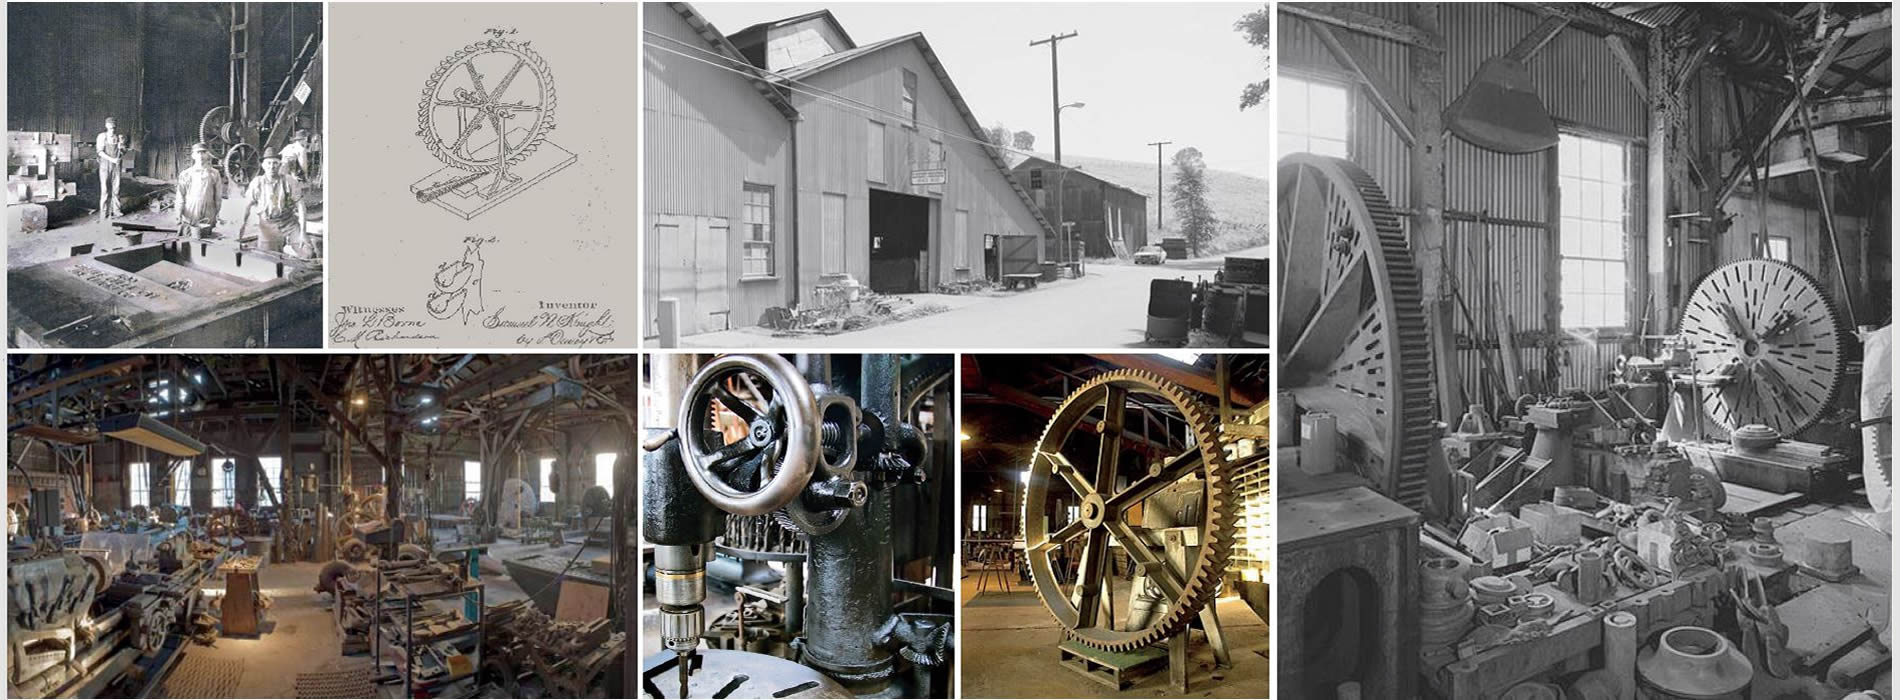 sutter creek knight foundry water powered foundry & machine shop